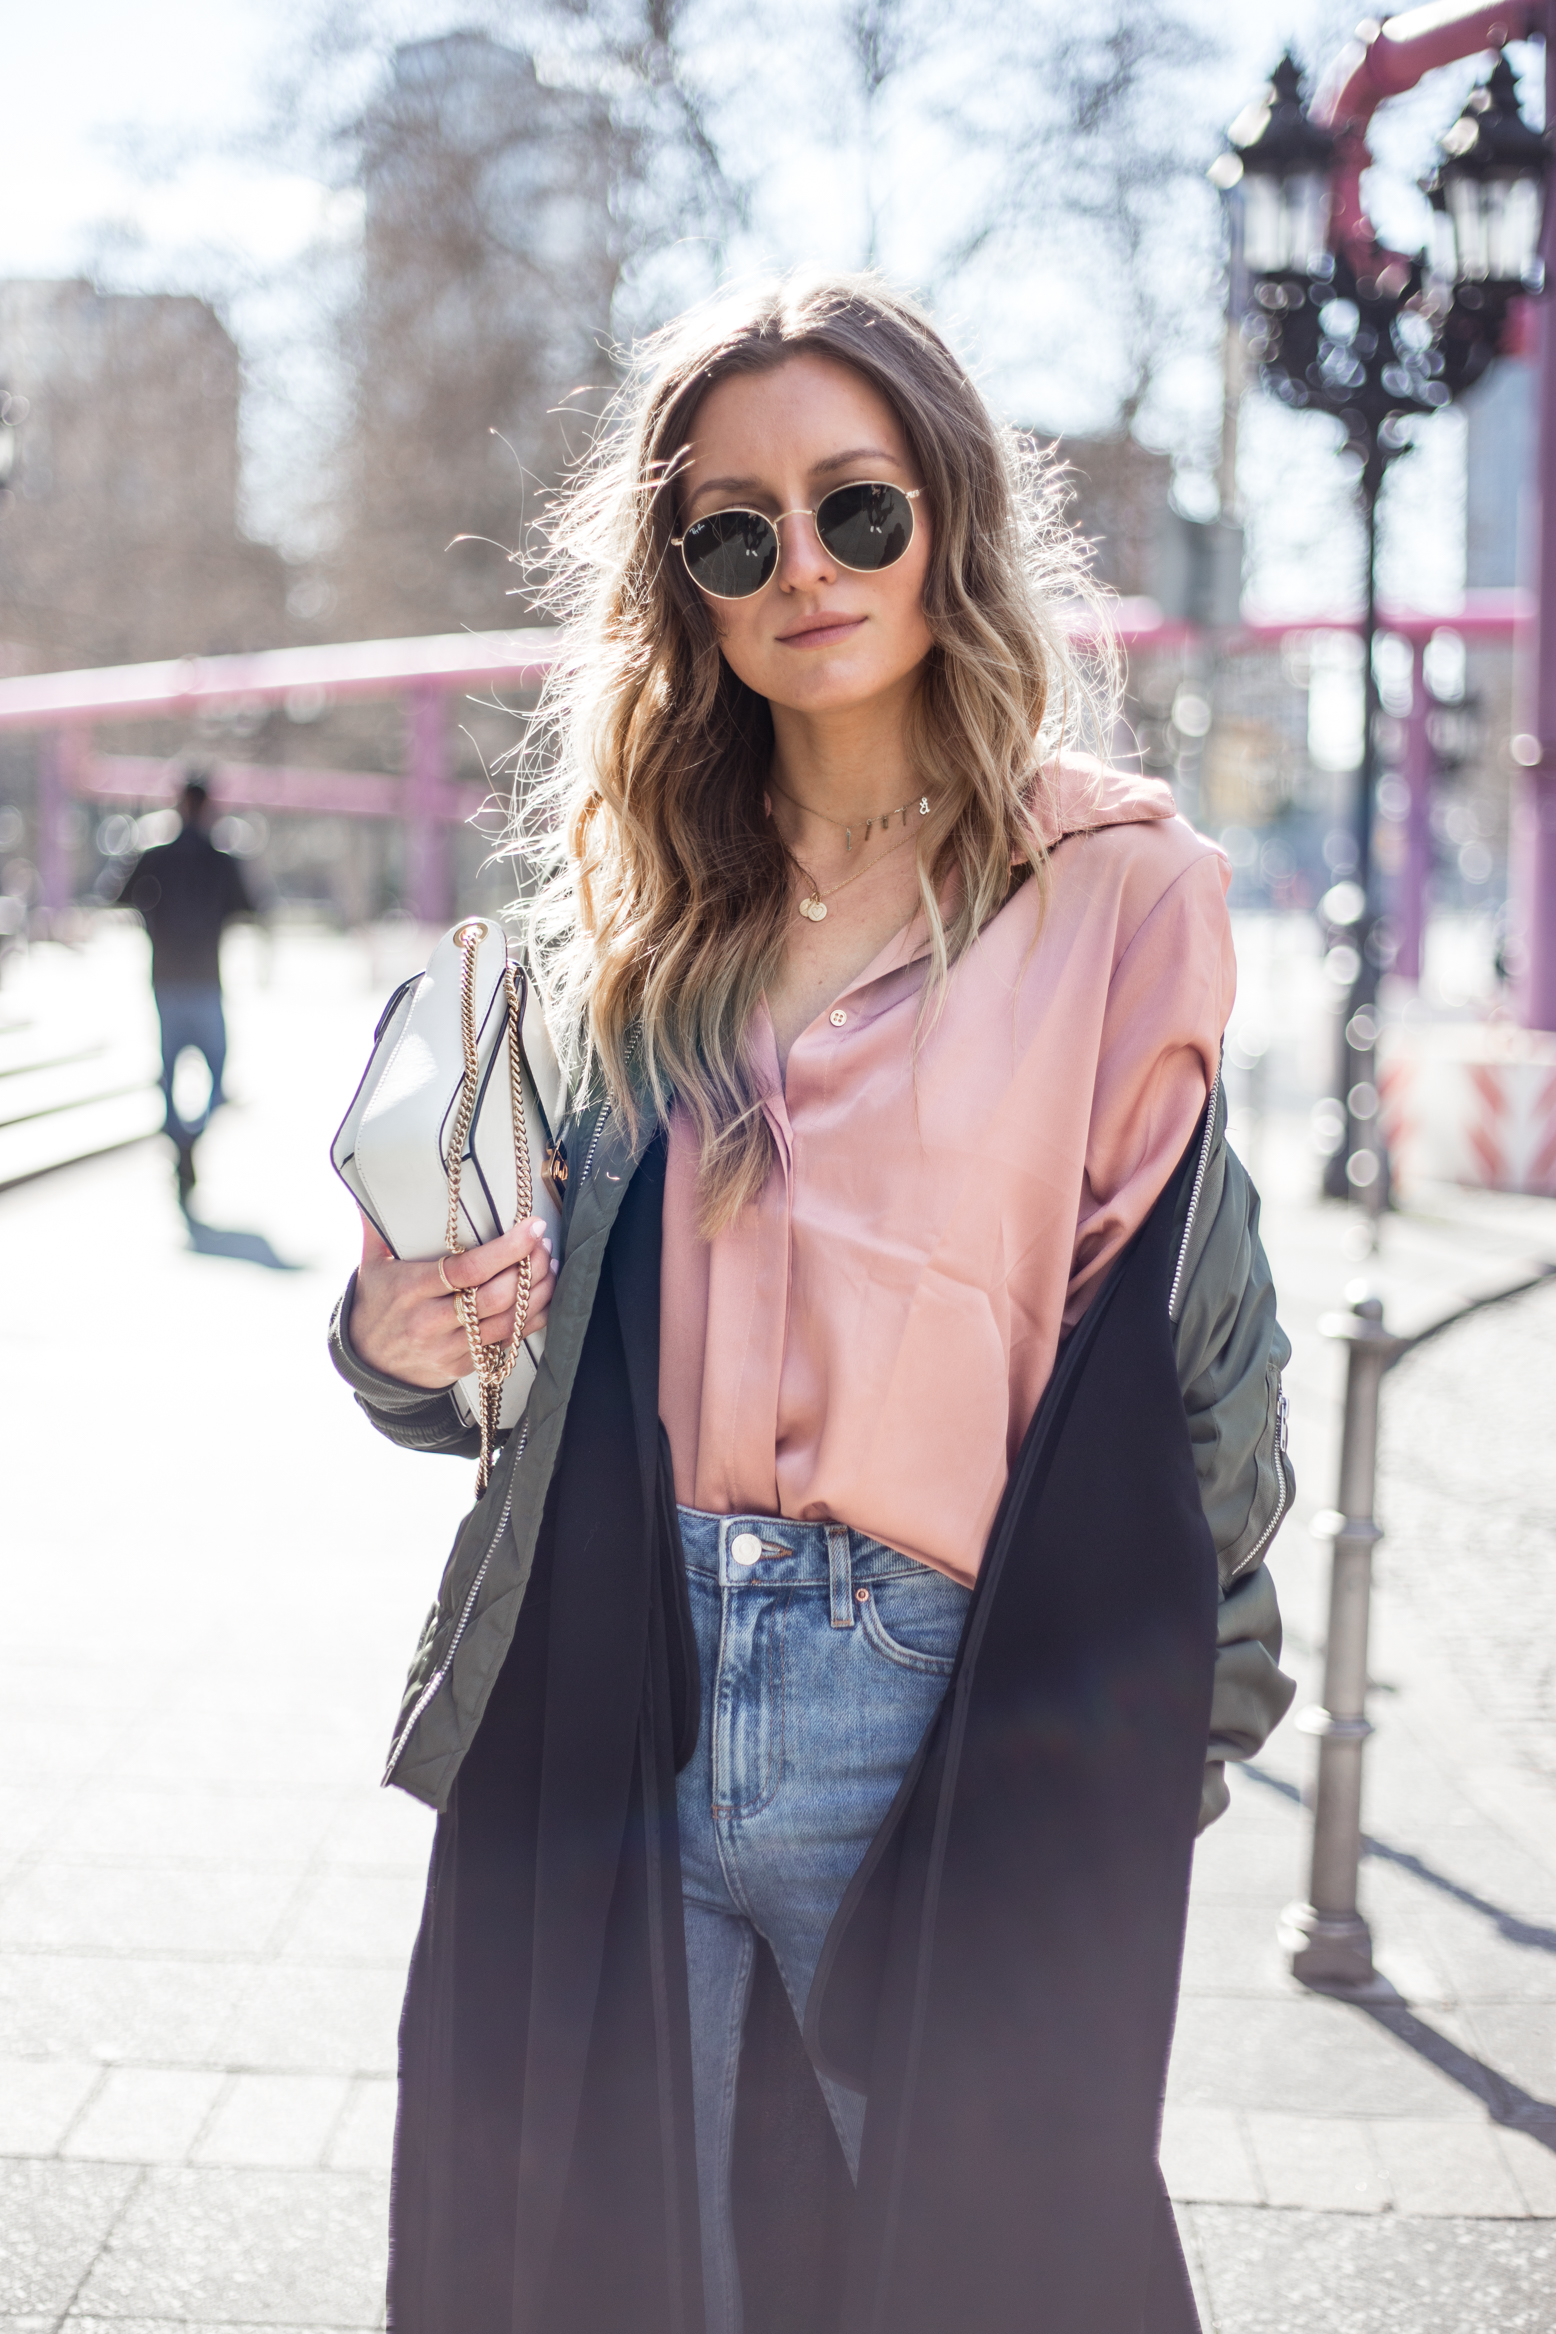 silk-shirt-bomber-jacket-outfit-1354